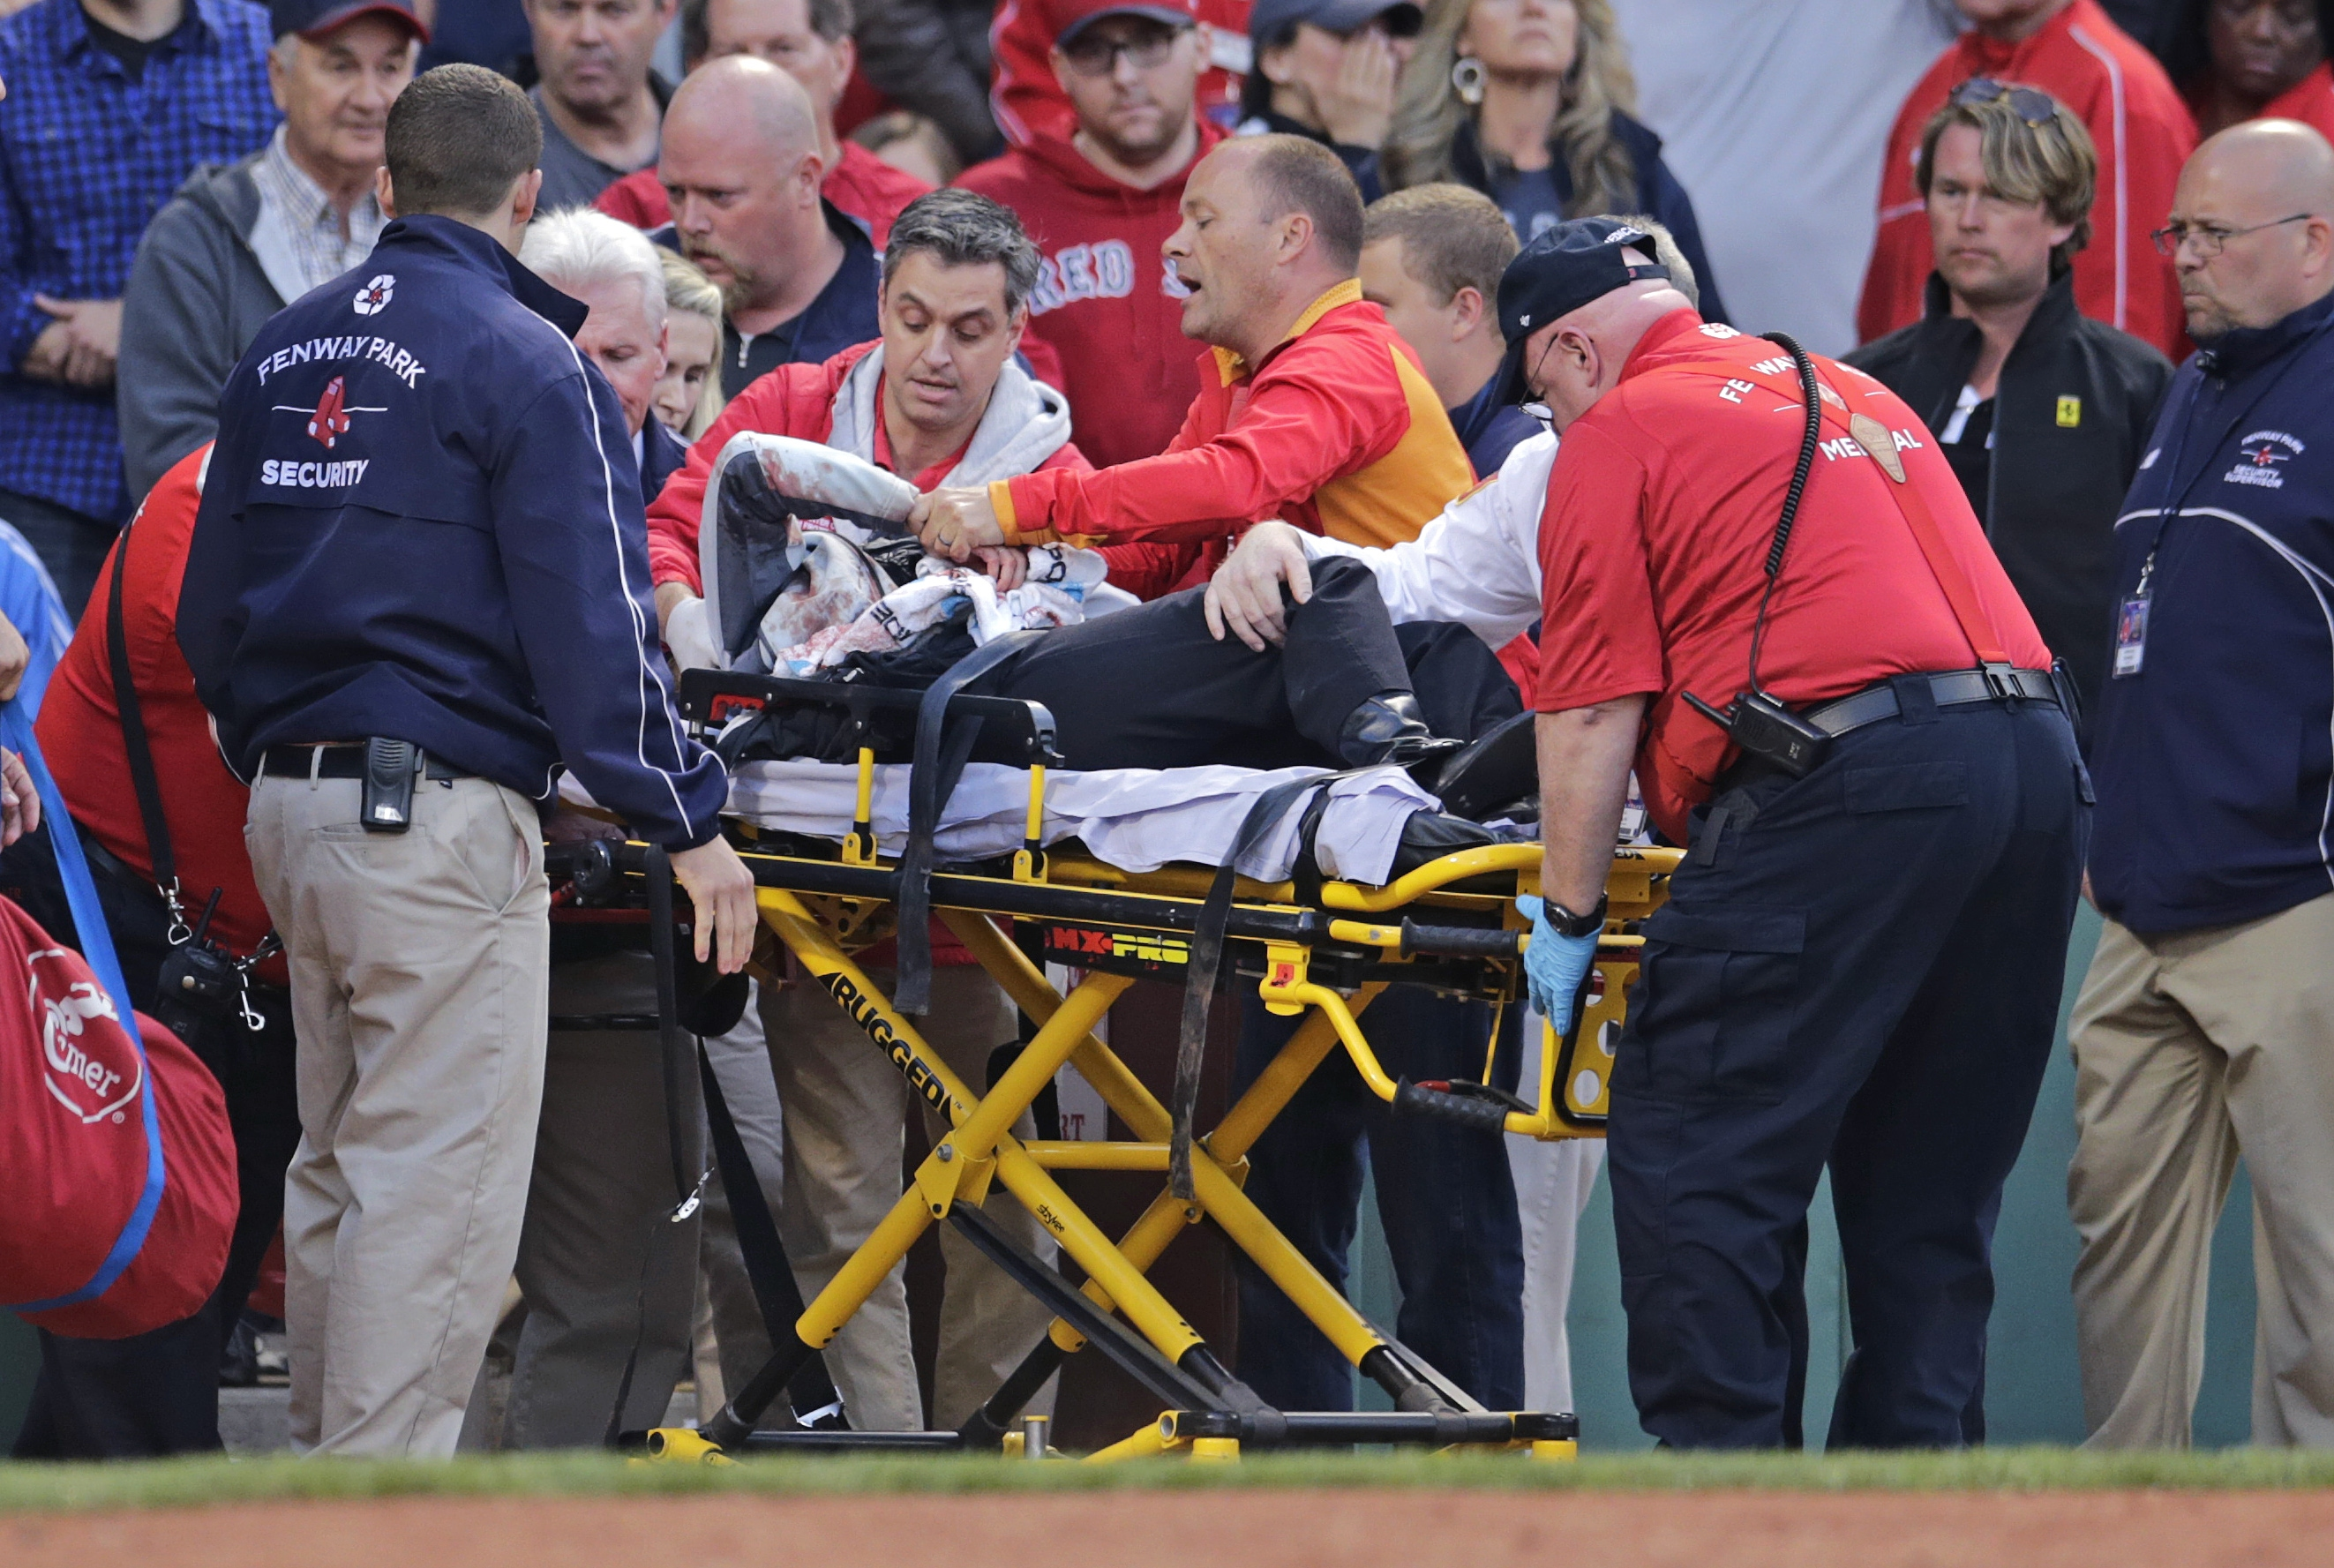 Boston - Woman Struck By Baseball Bat At Red Sox Game In Serious